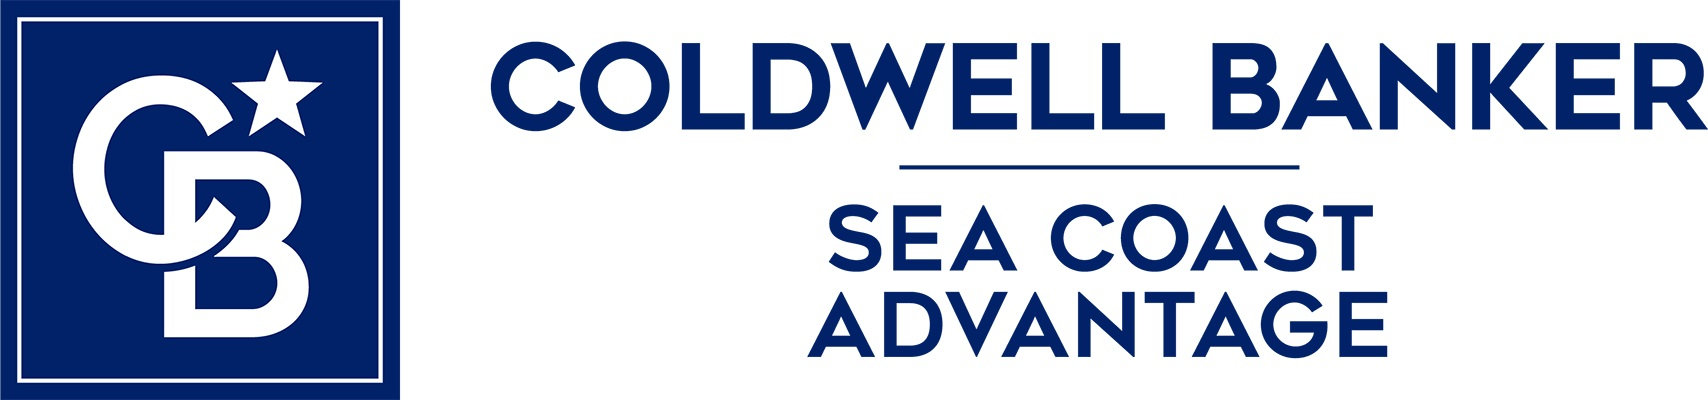 Kimberly Sands - Coldwell Banker Sea Coast Advantage Realty